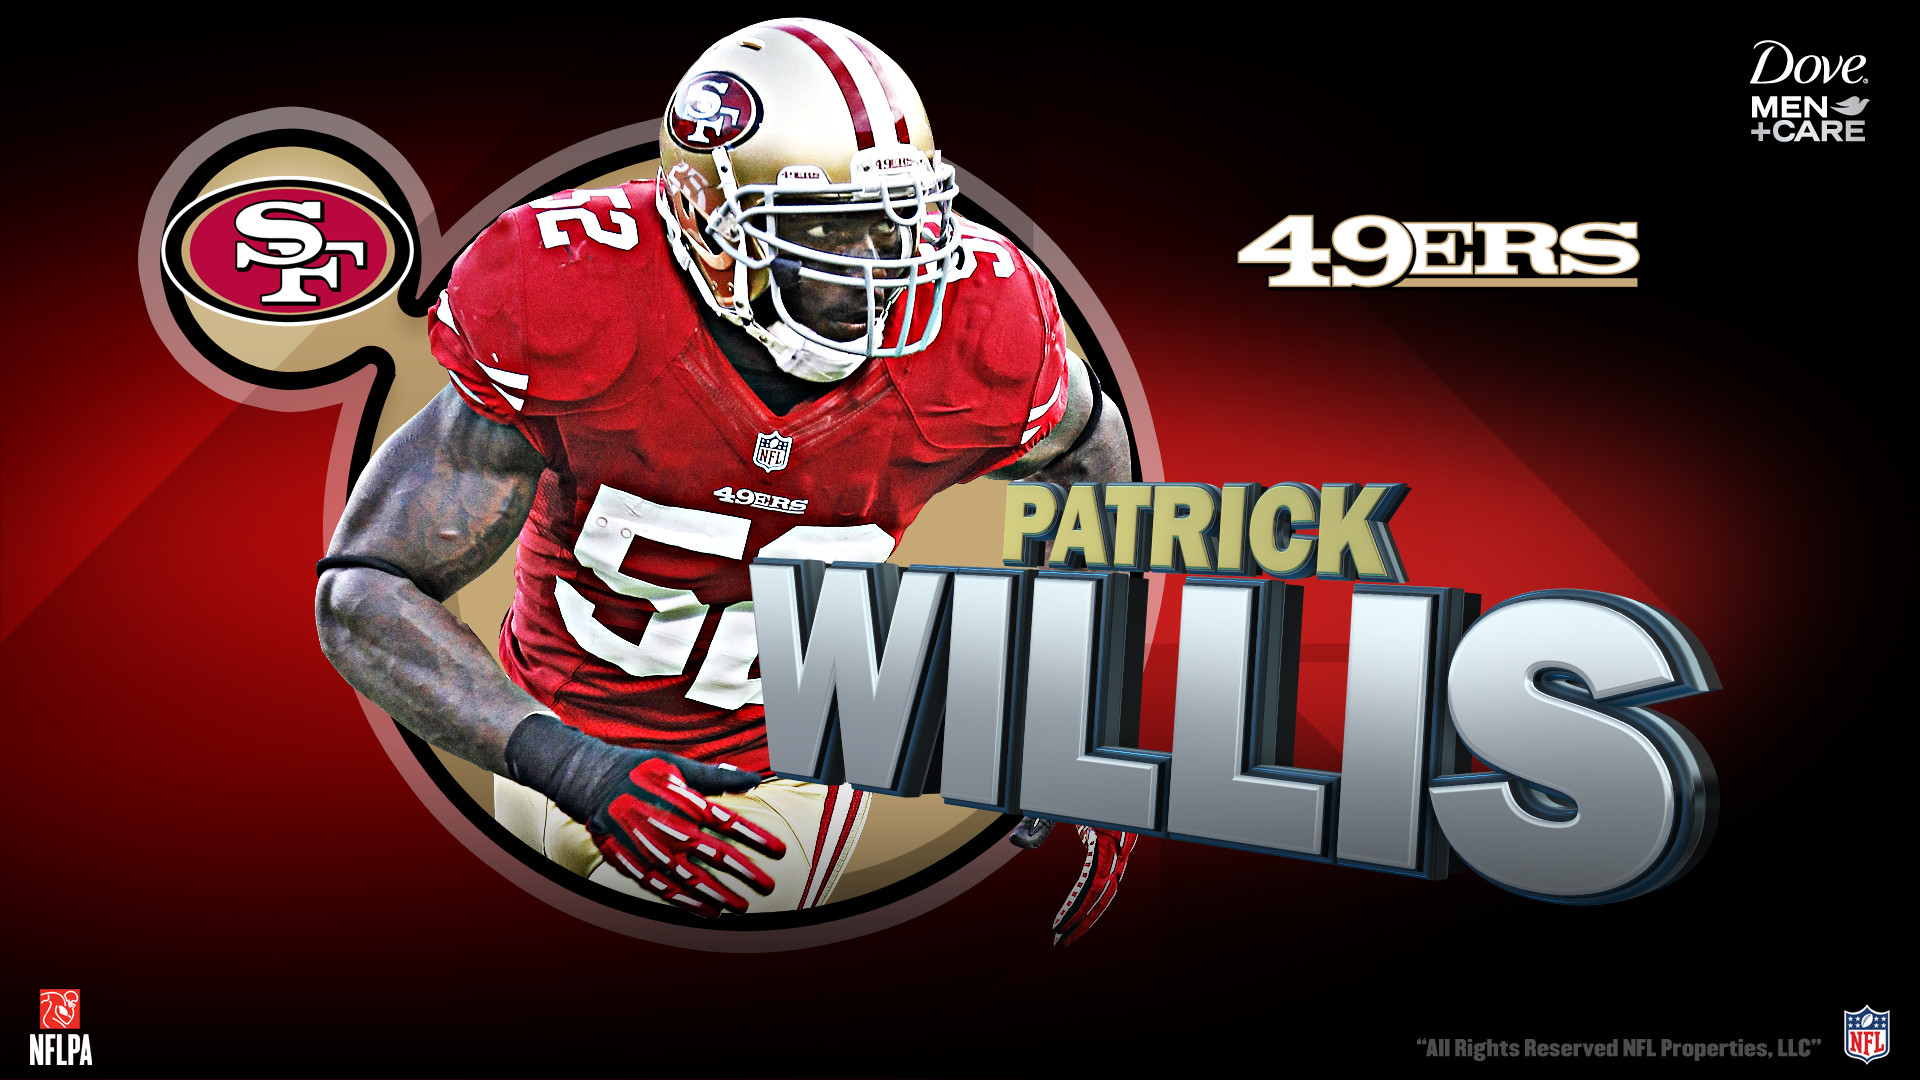 Awesome Patrick Willis wallpaper. Background of the day: San Francisco 49ers